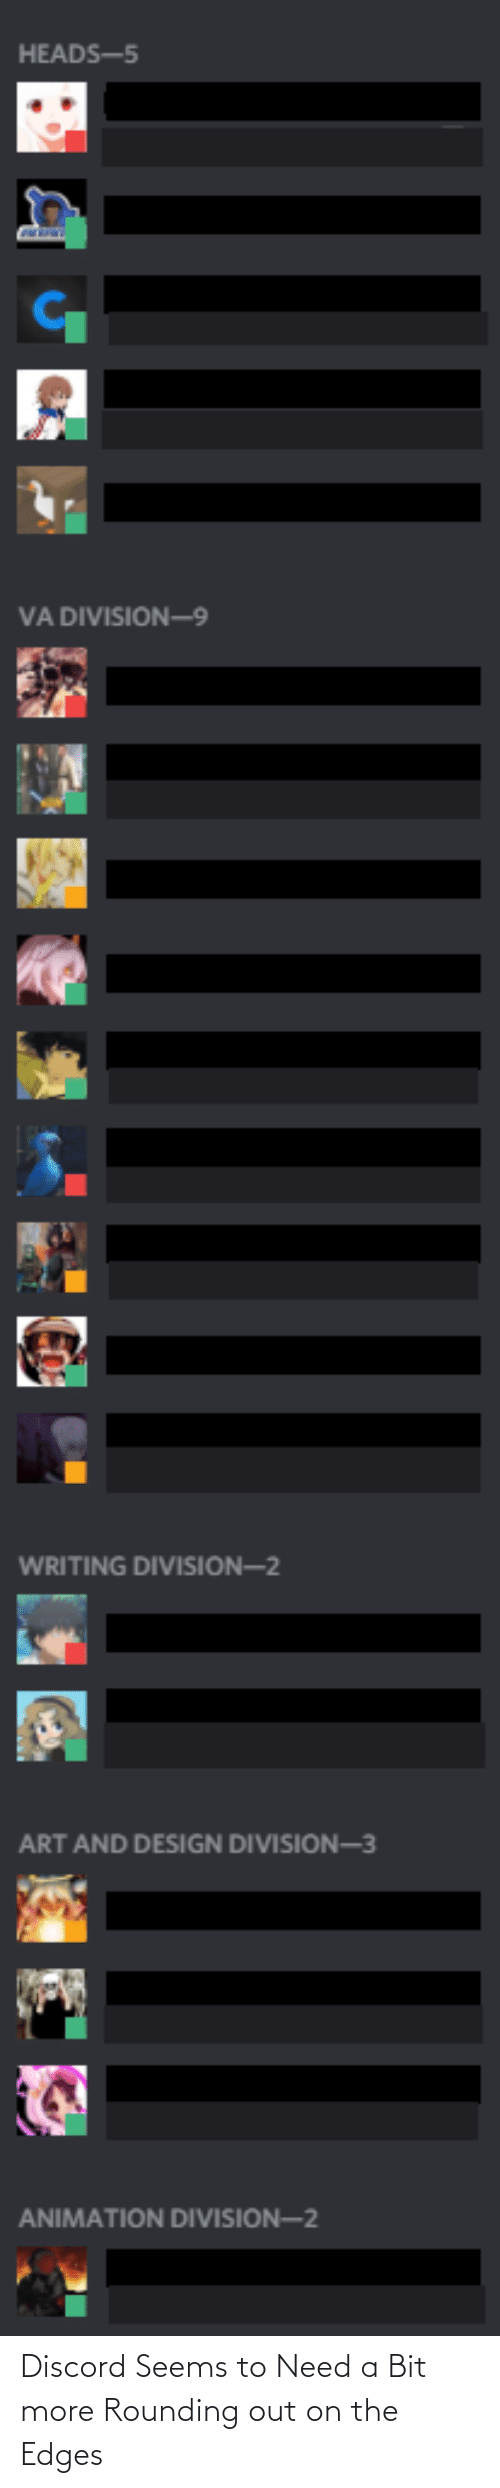 edges: Discord Seems to Need a Bit more Rounding out on the Edges